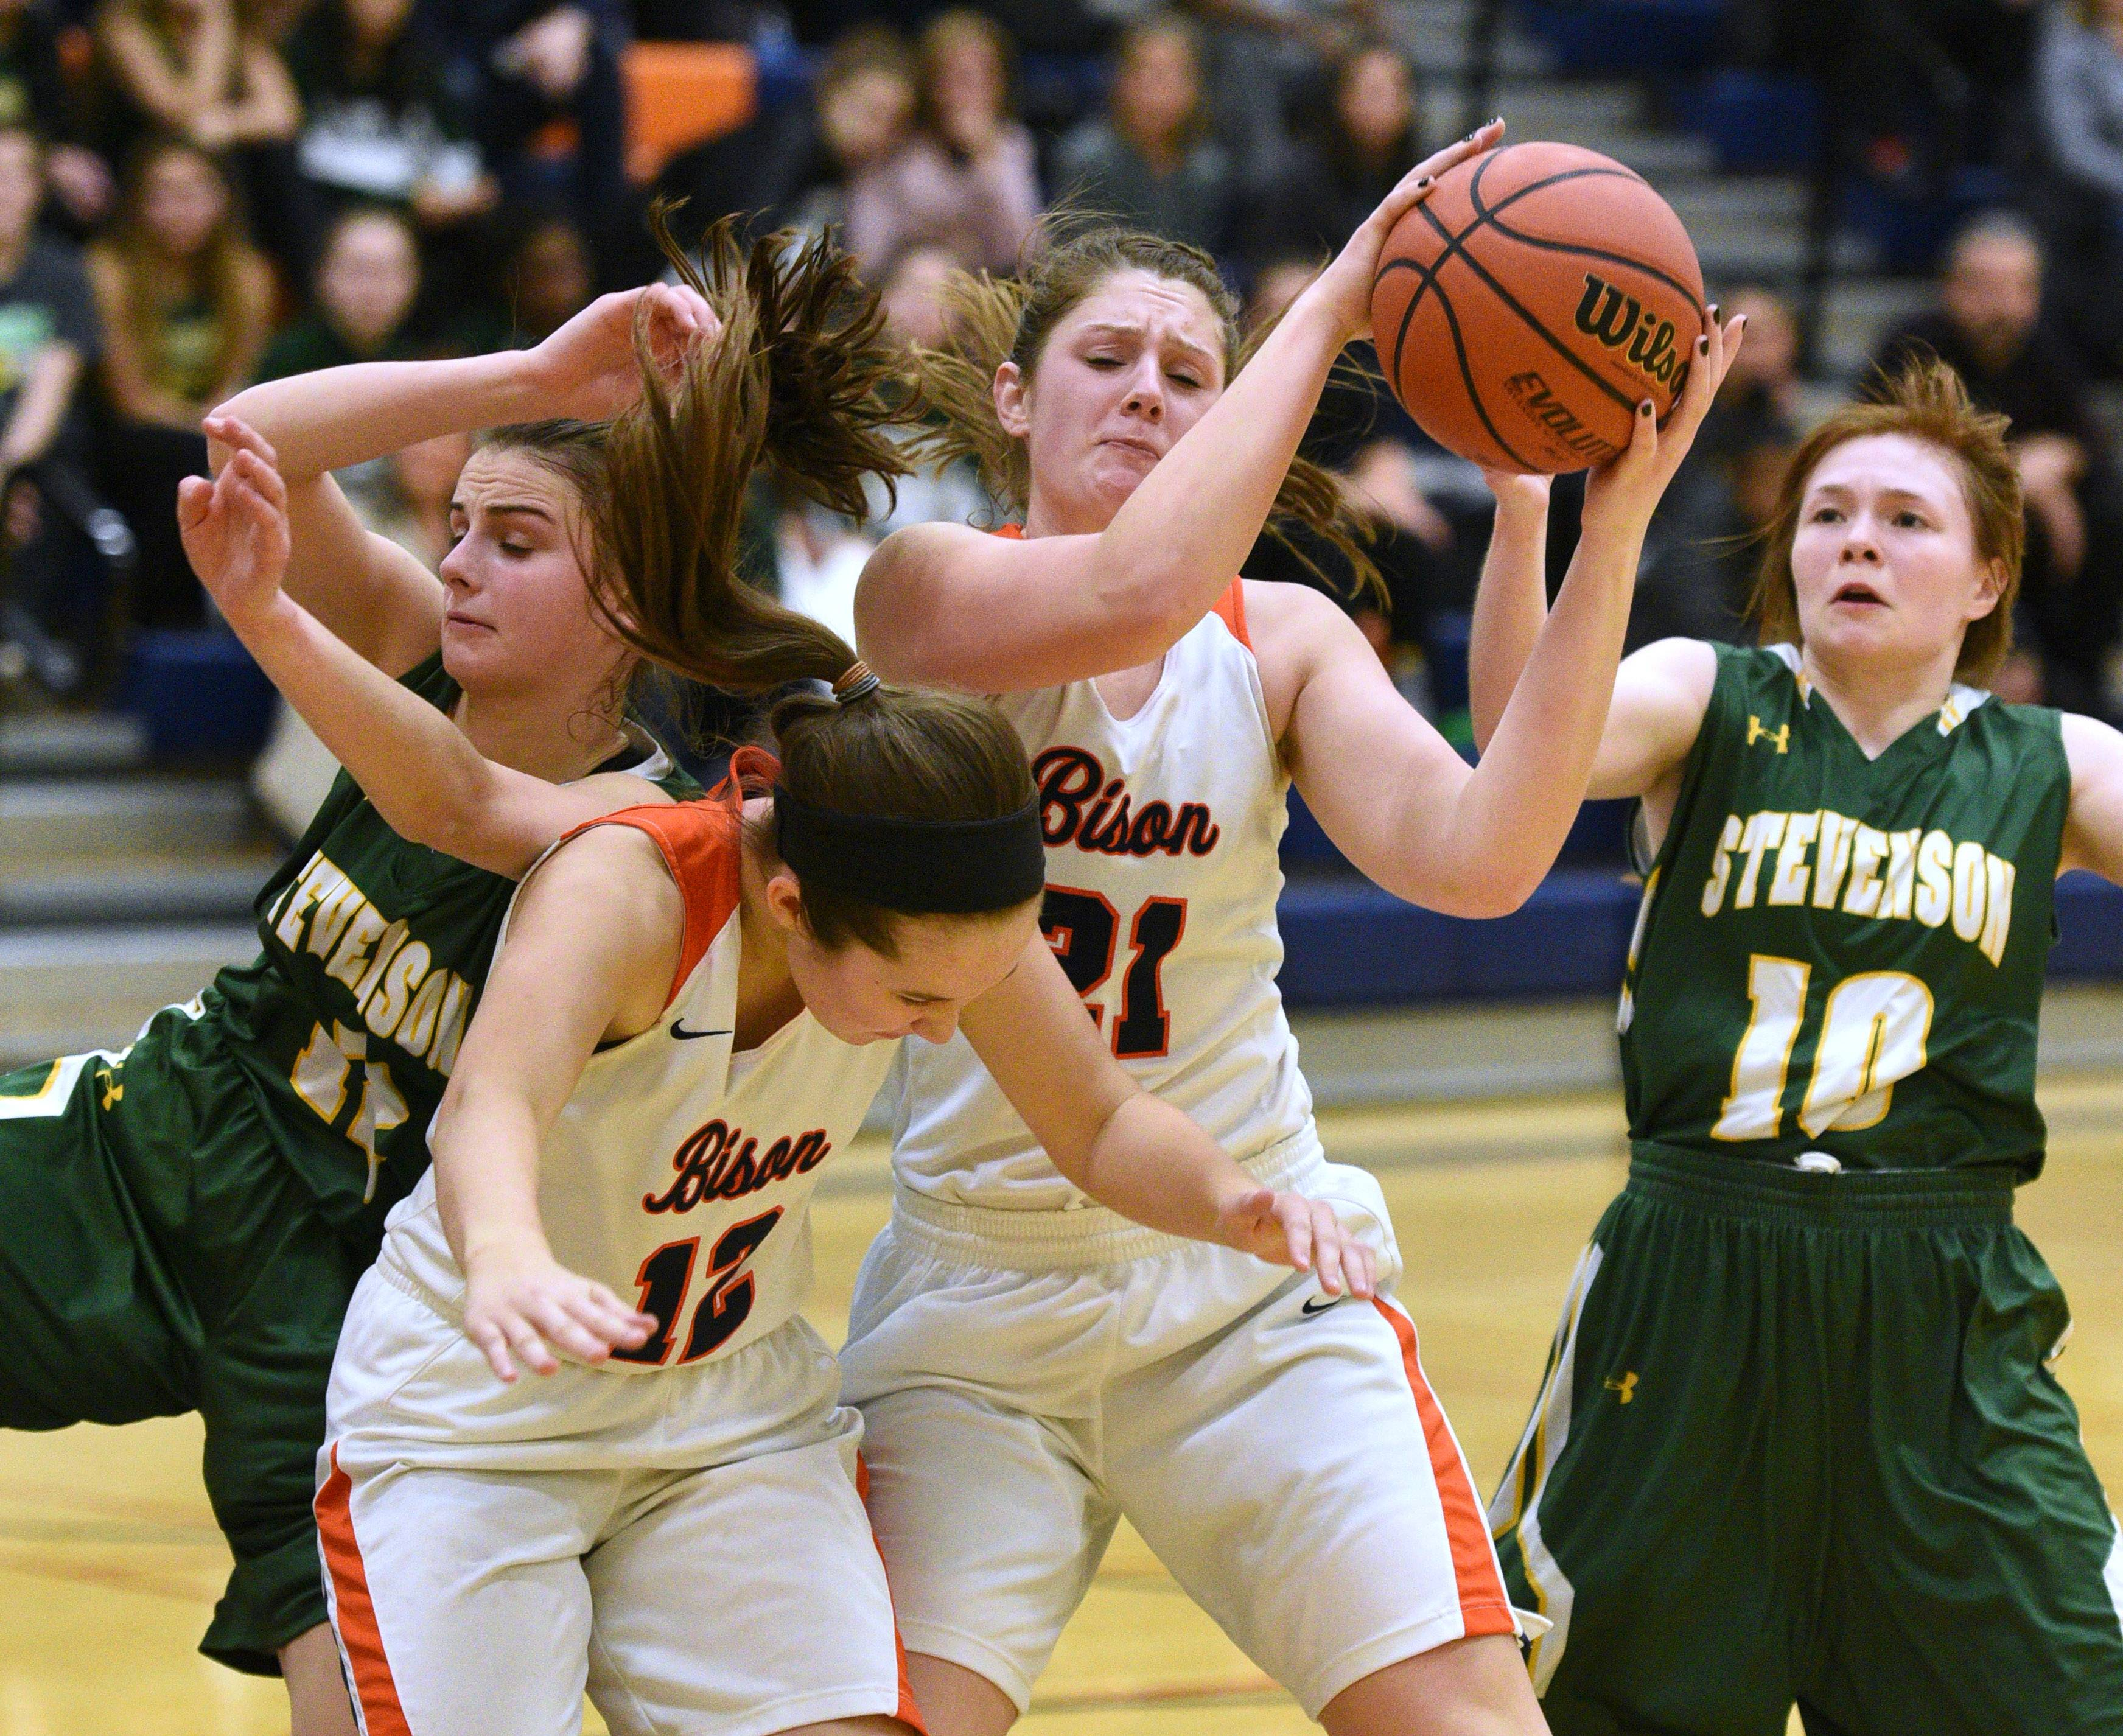 Stevenson's Kristin Hill, left, and Nicole Ware, right, battle for the rebound with Buffalo Grove's Hannah Young (12) and Sydney Fortman (21) during Monday's girls basketball game in Buffalo Grove.